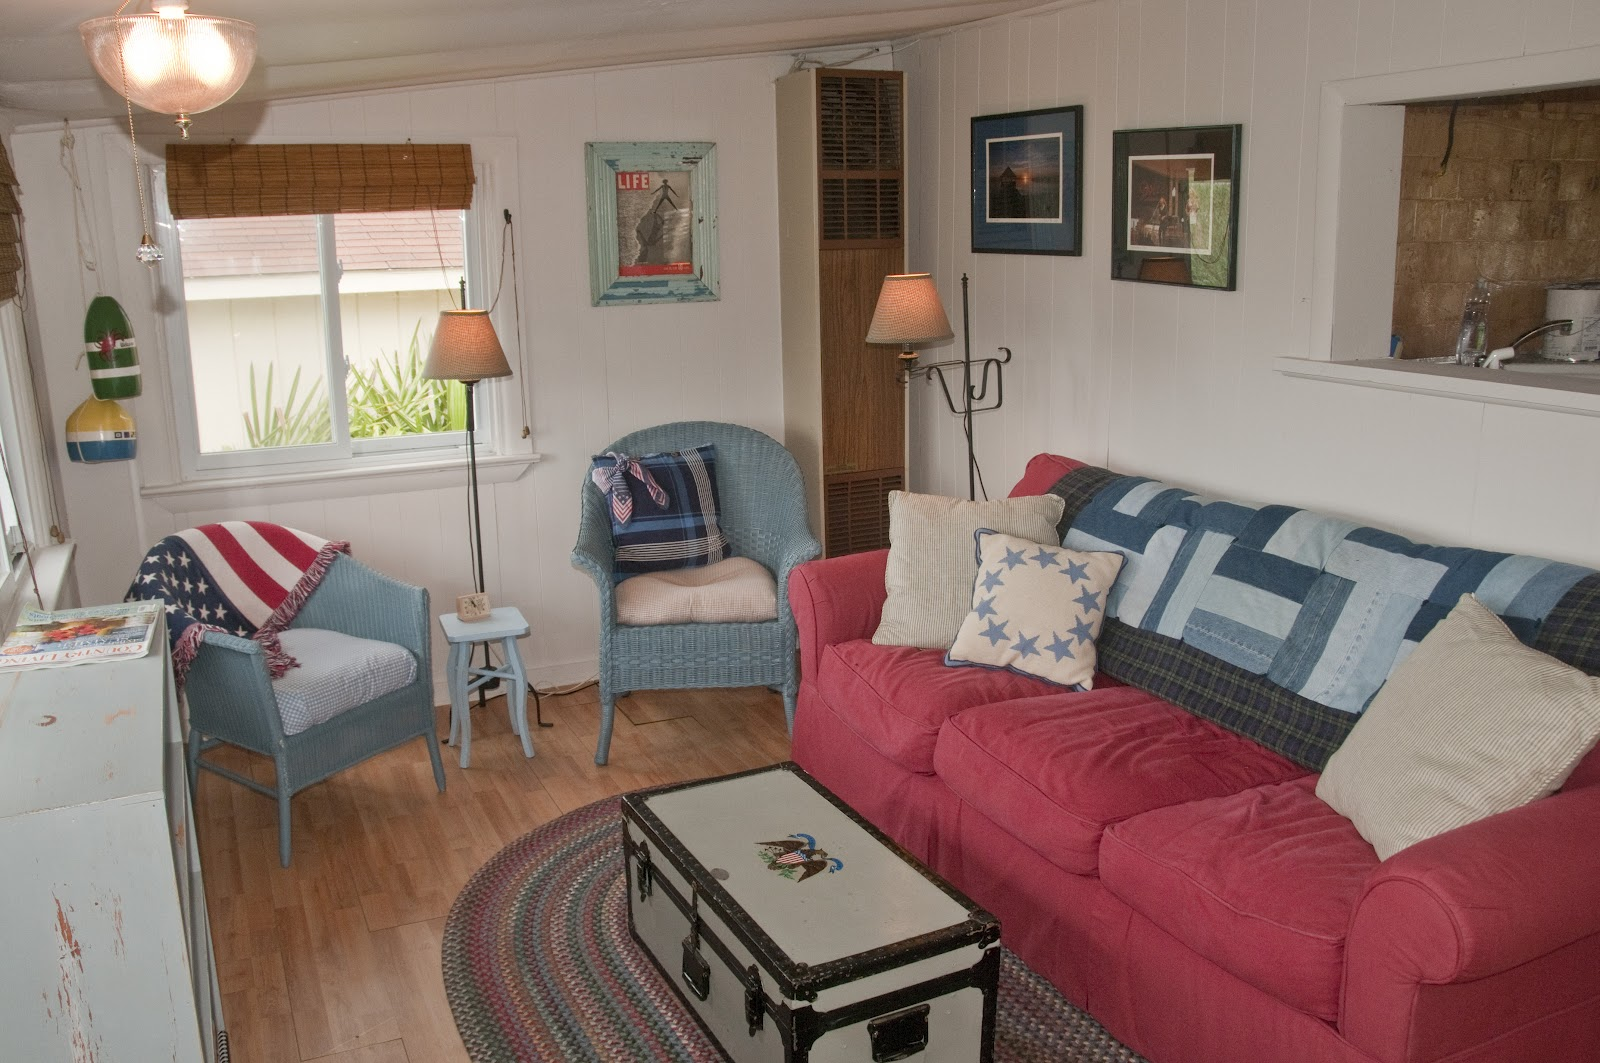 mobile home living room remodel living in mobile homes ideas photo gallery kelsey bass 20051